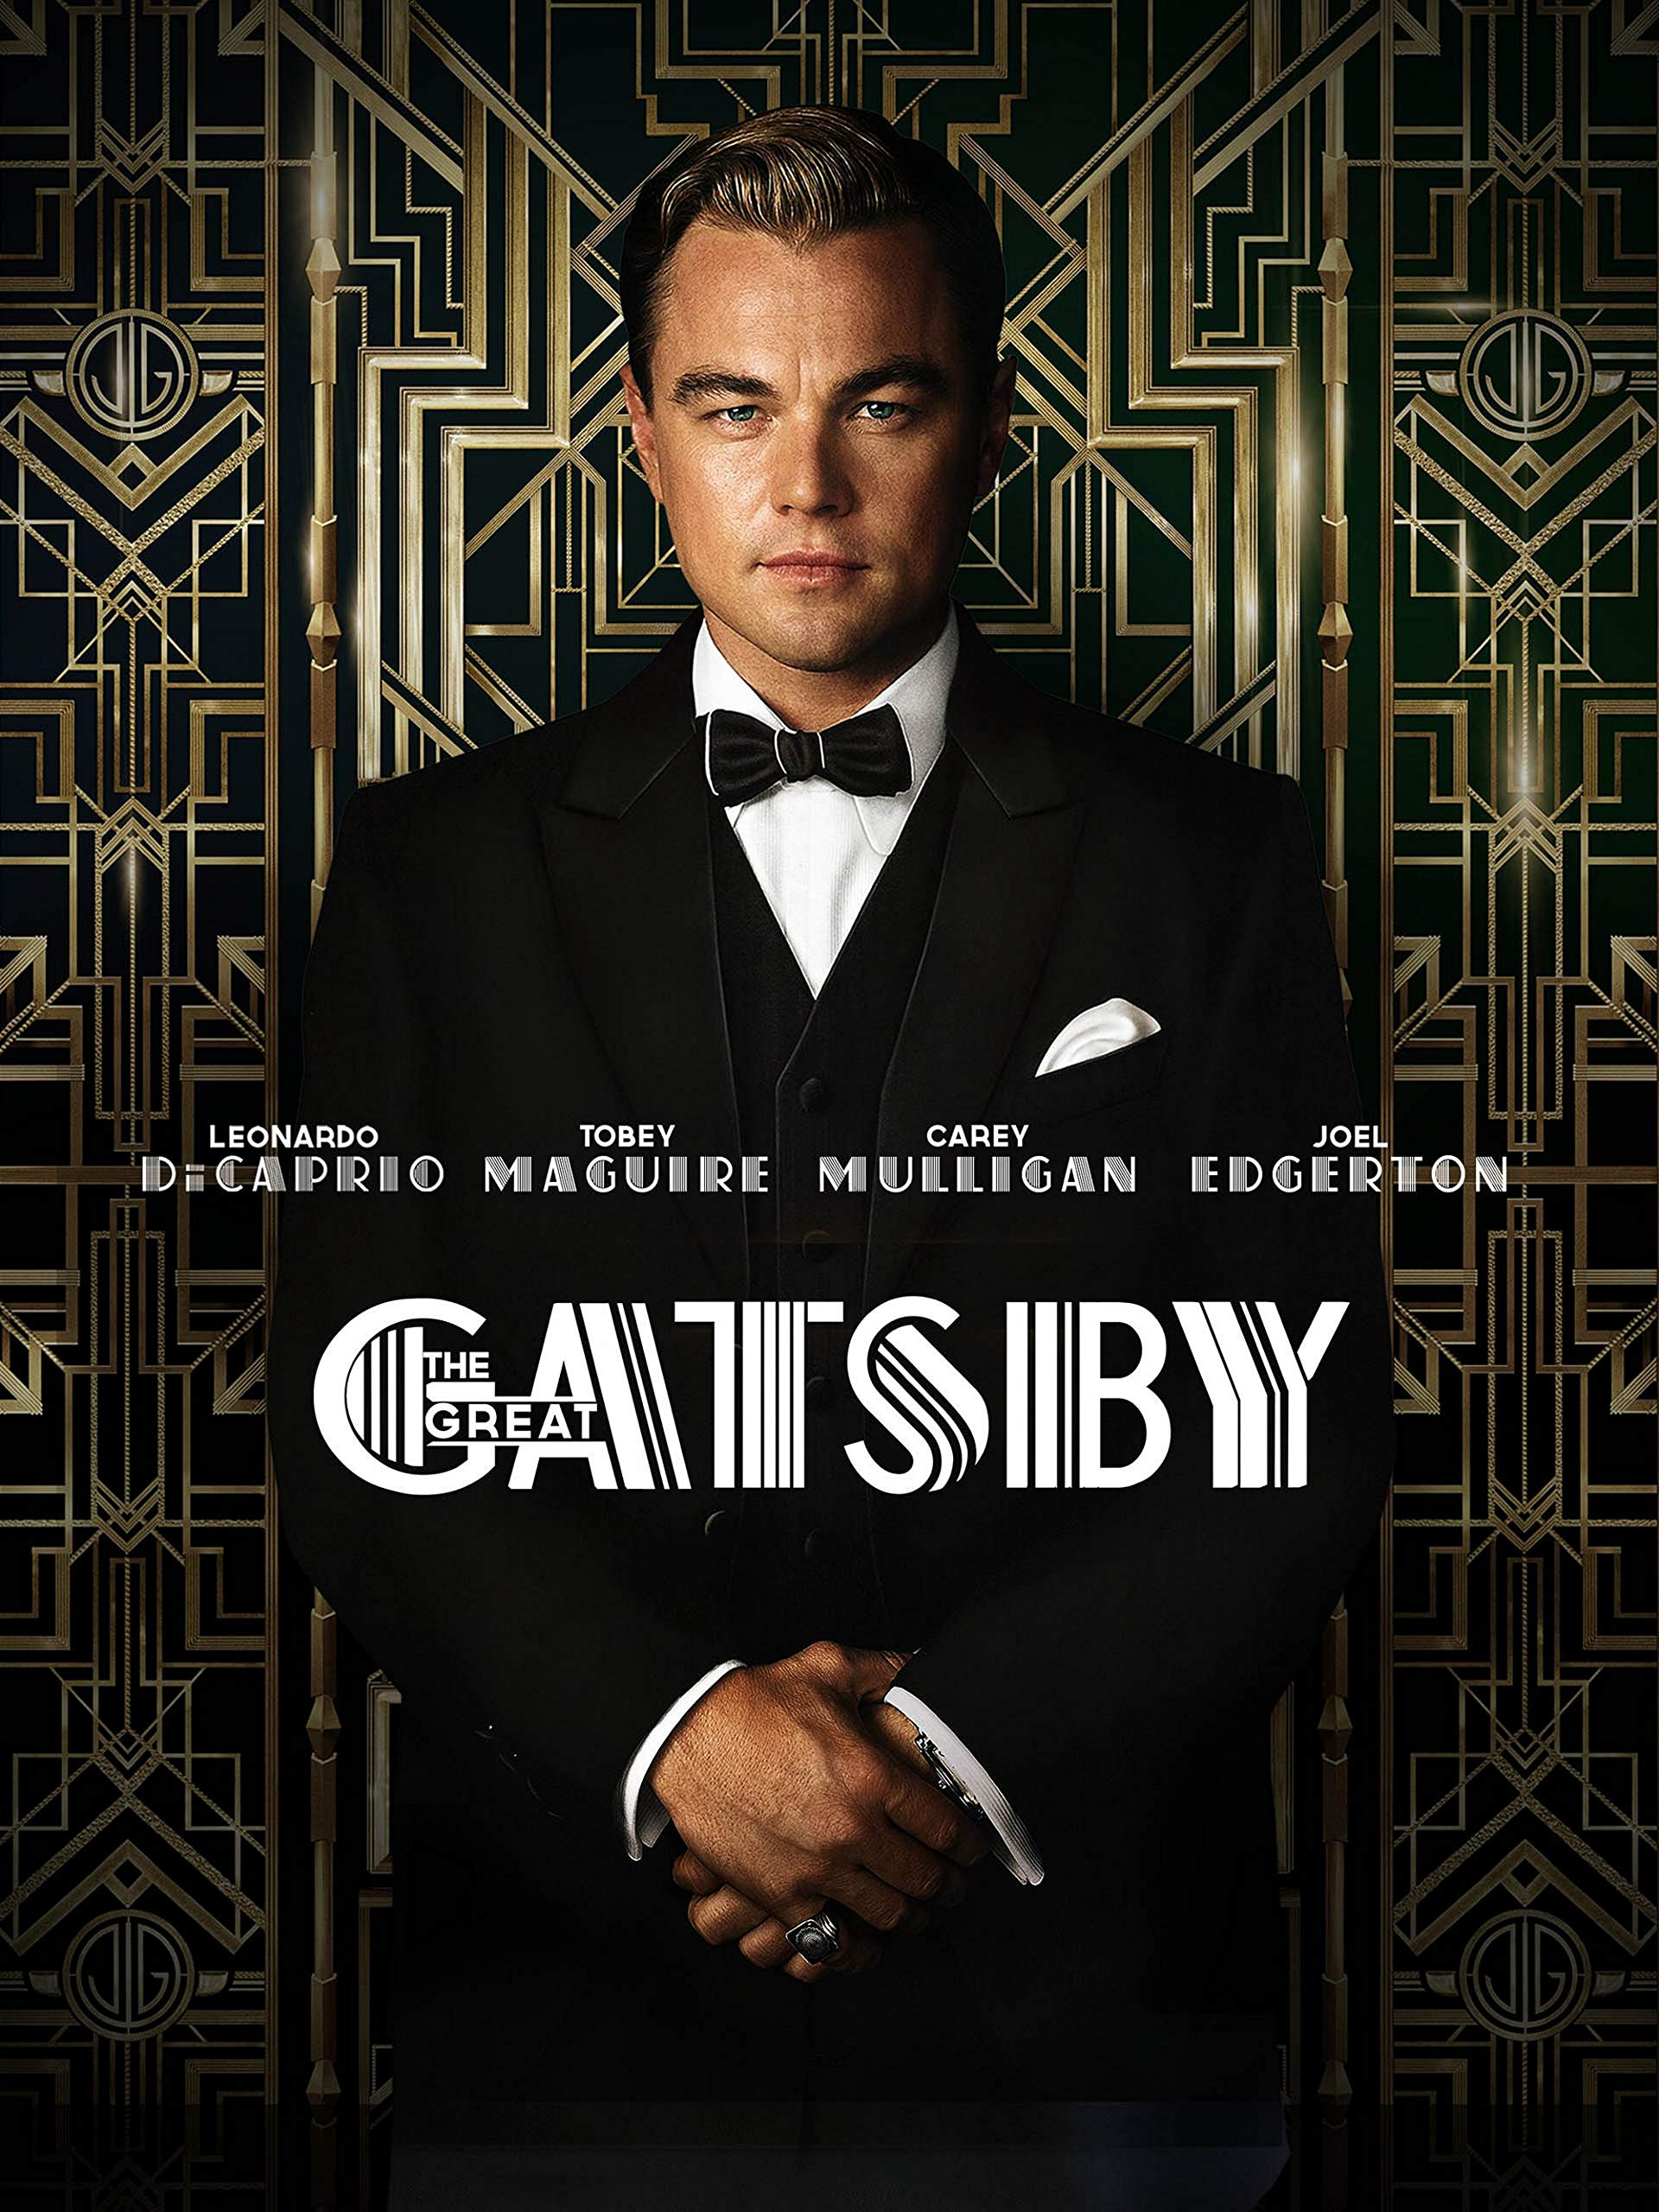 Image result for The great gatsby leo